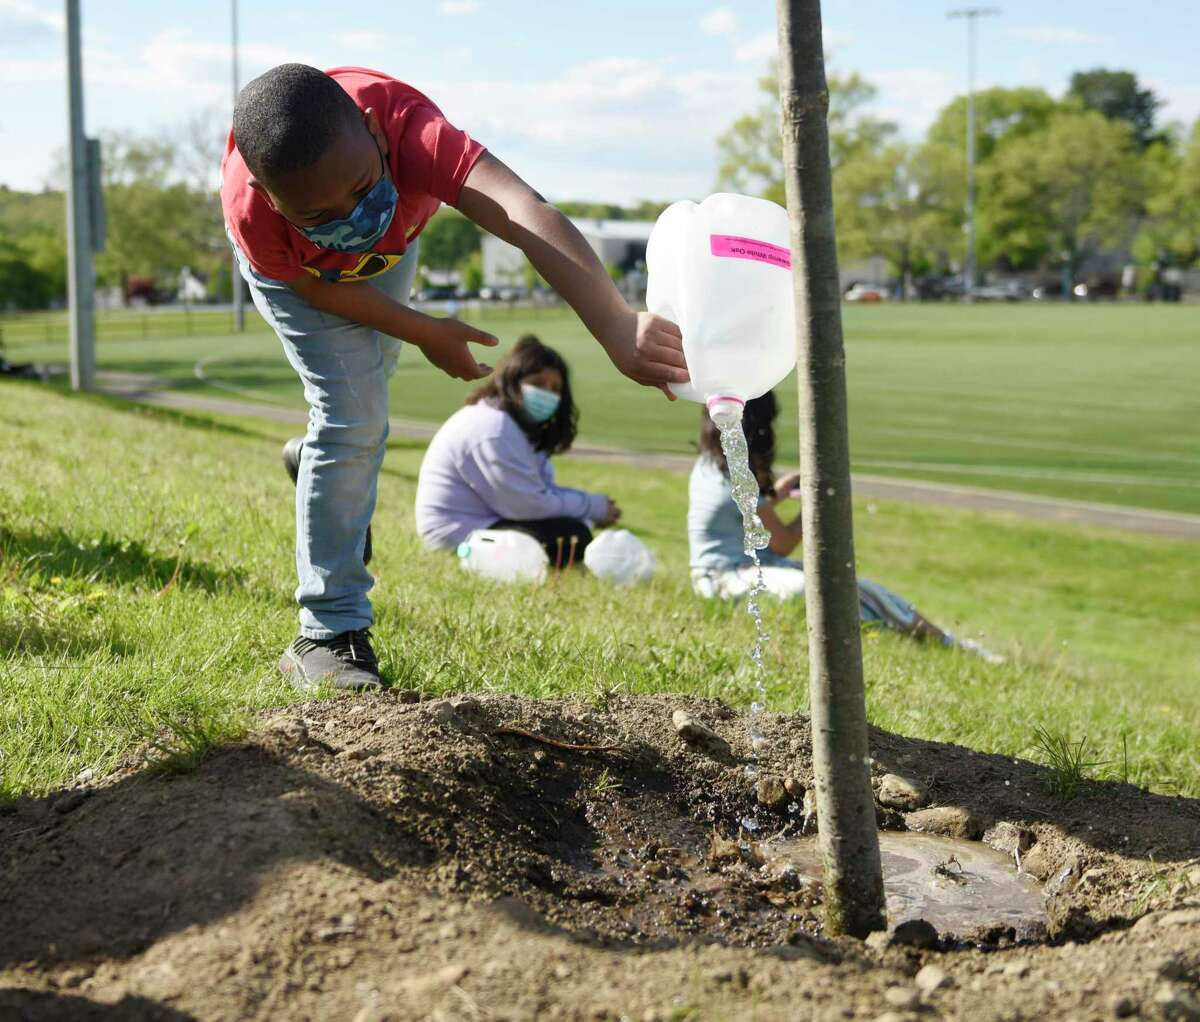 Semir B., 10, waters newly-planted Swamp White Oak trees at Lione Park in Stamford, Conn. Thursday, May 13, 2021. Pollinator Pathway Stamford planted 37 new trees in four Stamford parks starting on Earth Day of this year to help create corridors of pollinator-friendly habitat throughout the northeast. With the help of the Boys & Girls Club of Stamford, the new Red Maples and Swamp White Oaks will be watered by Keystone Club and STEM students.